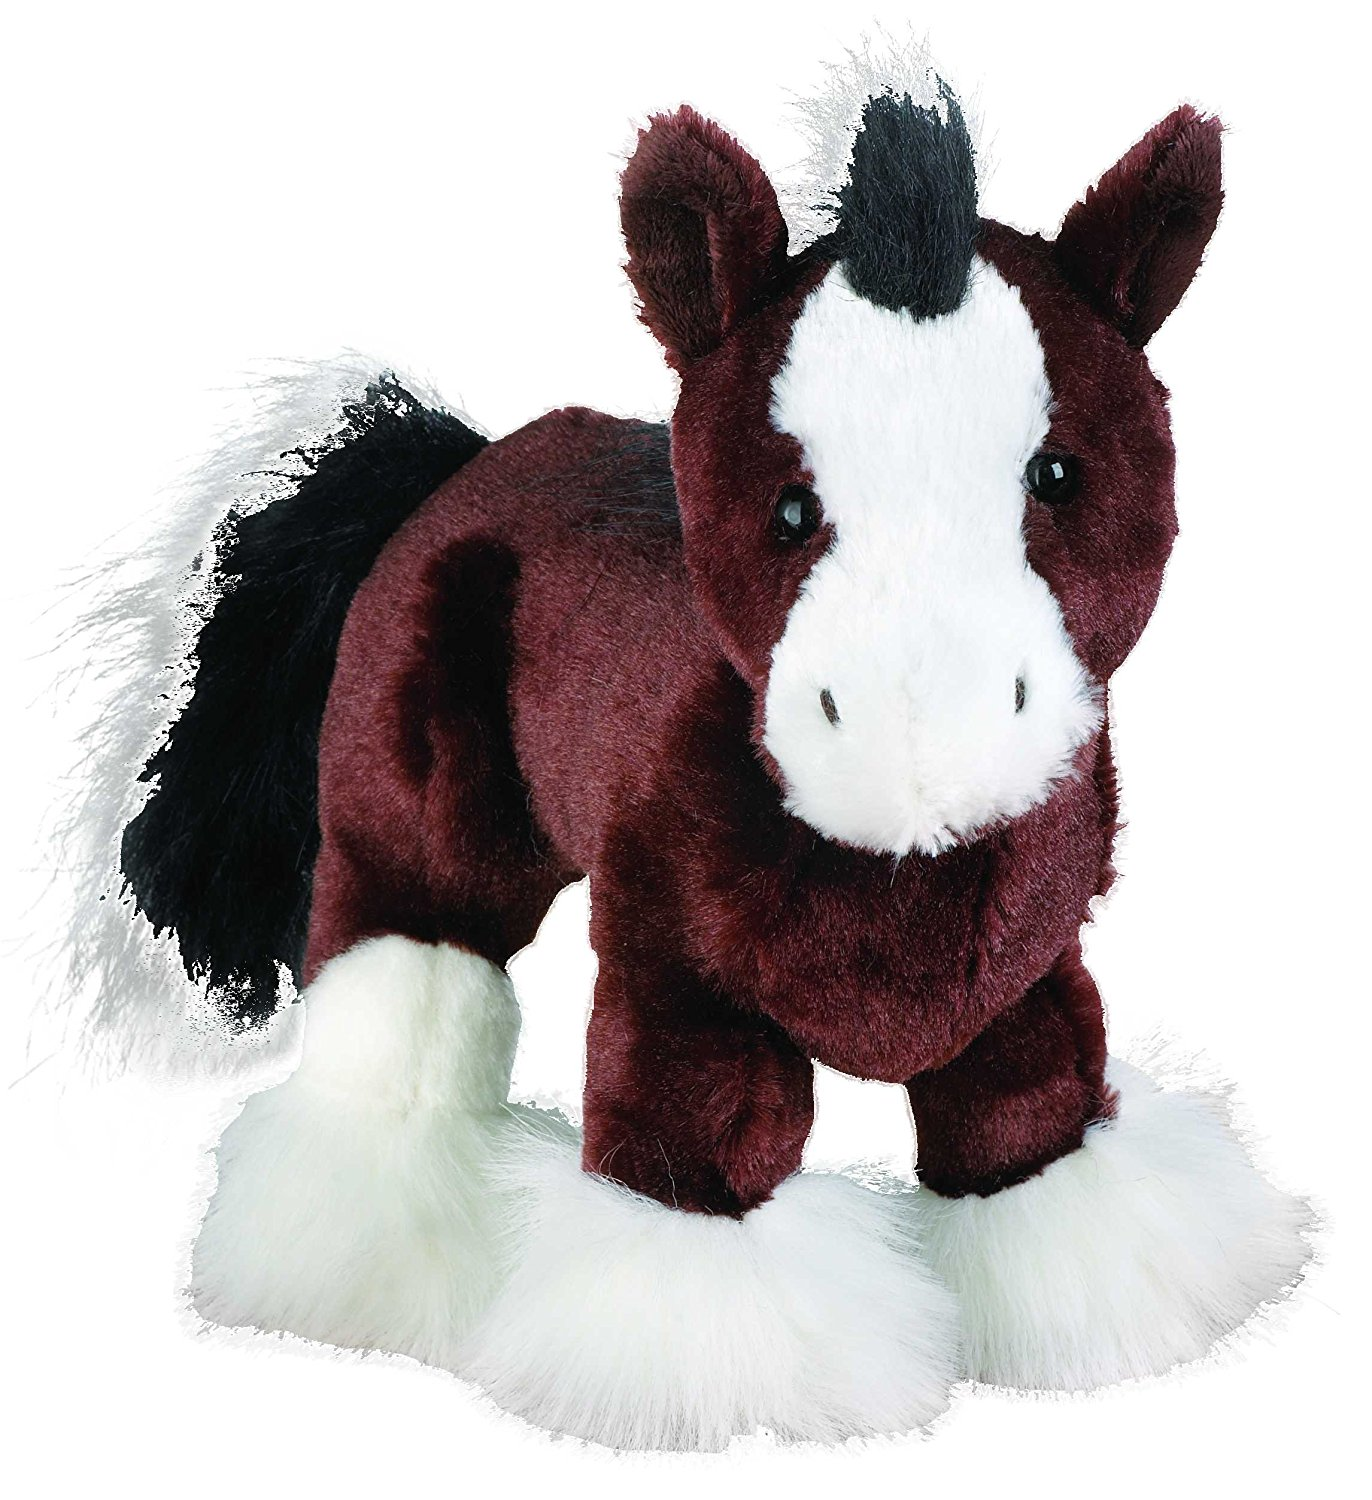 Clydesdale, Webkinz pets are very special plush animals By Webkinz